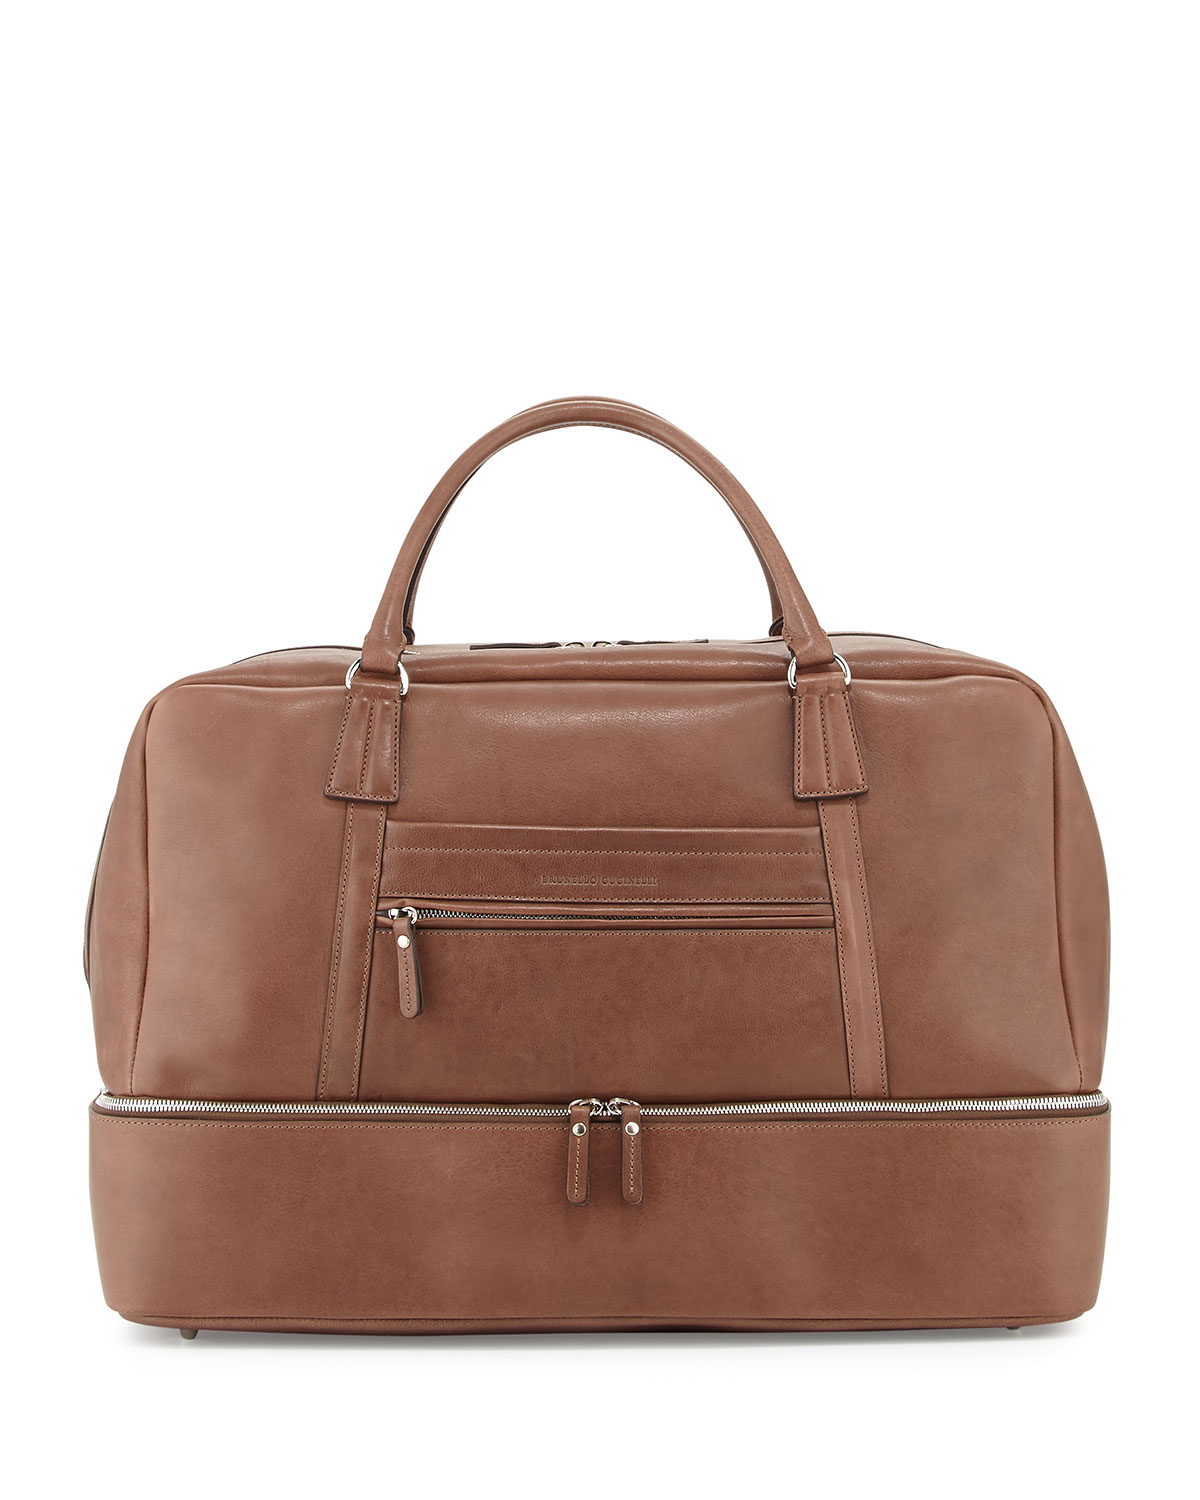 Mens Leather Bottom Compartment Duffle Bag, Brown   Brunello Cucinelli   Brown